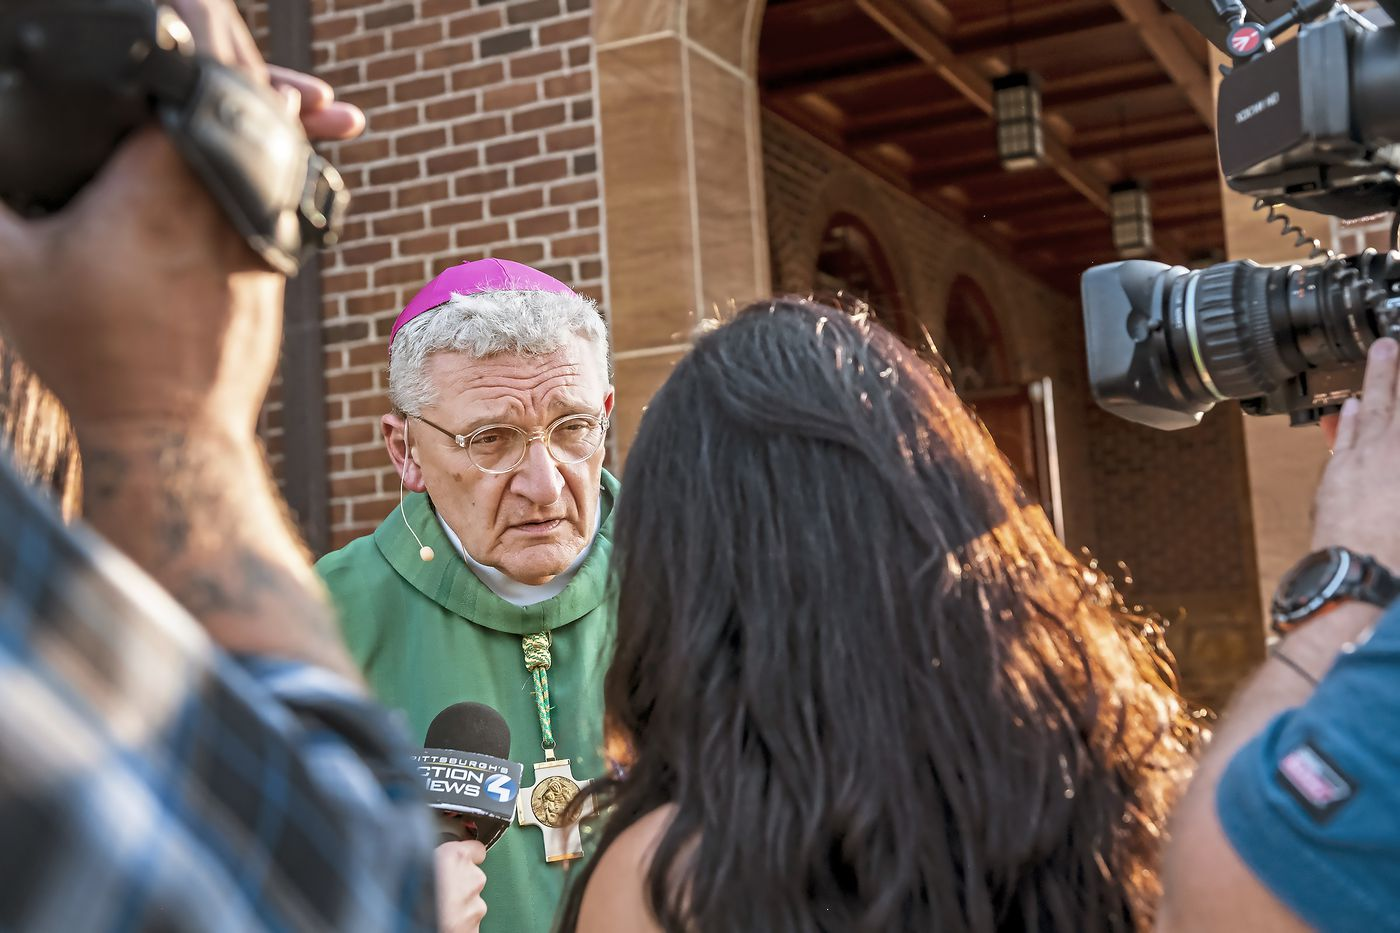 Bishops must do more to gain back the trust of the faithful | Opinion